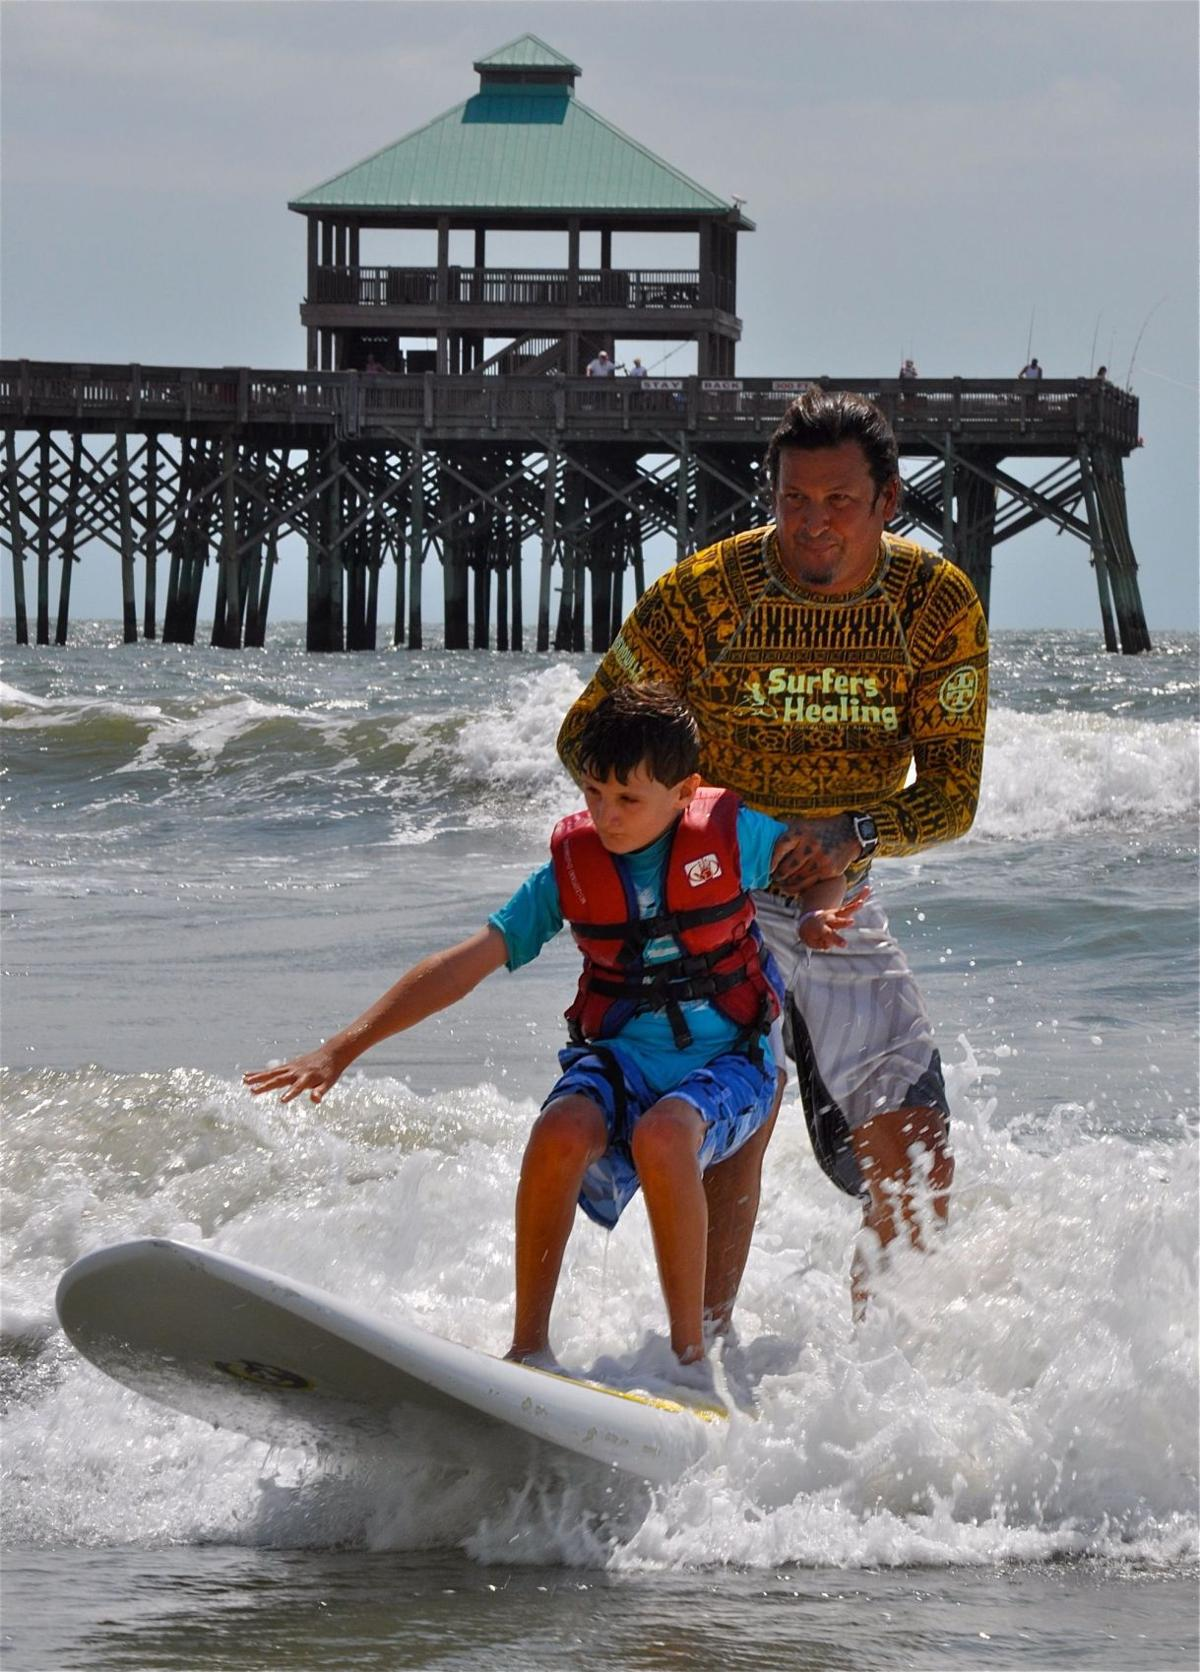 Seventh Surfers Healing camp comes to Folly on Wednesday